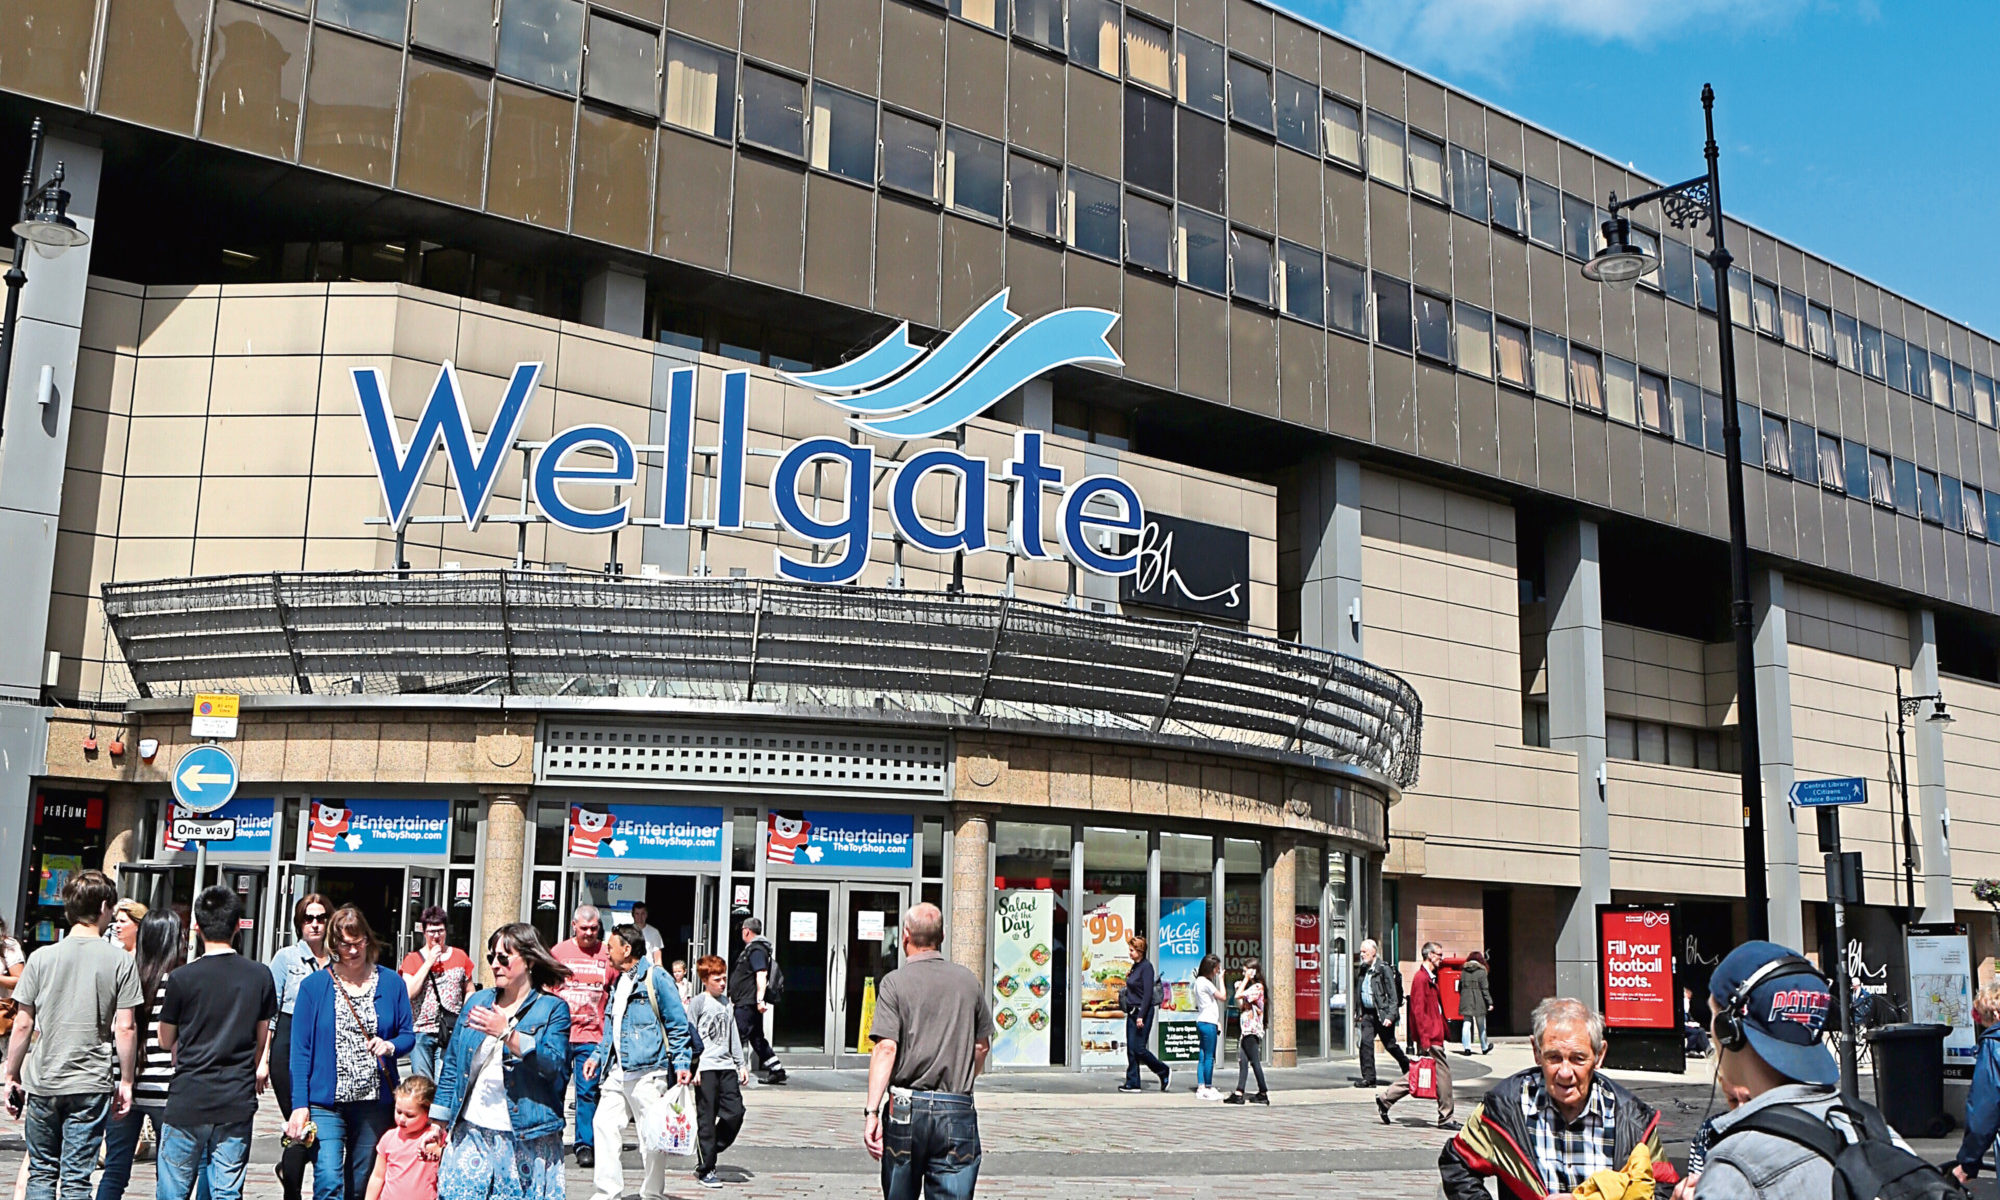 The offences took place in the Wellgate Centre.